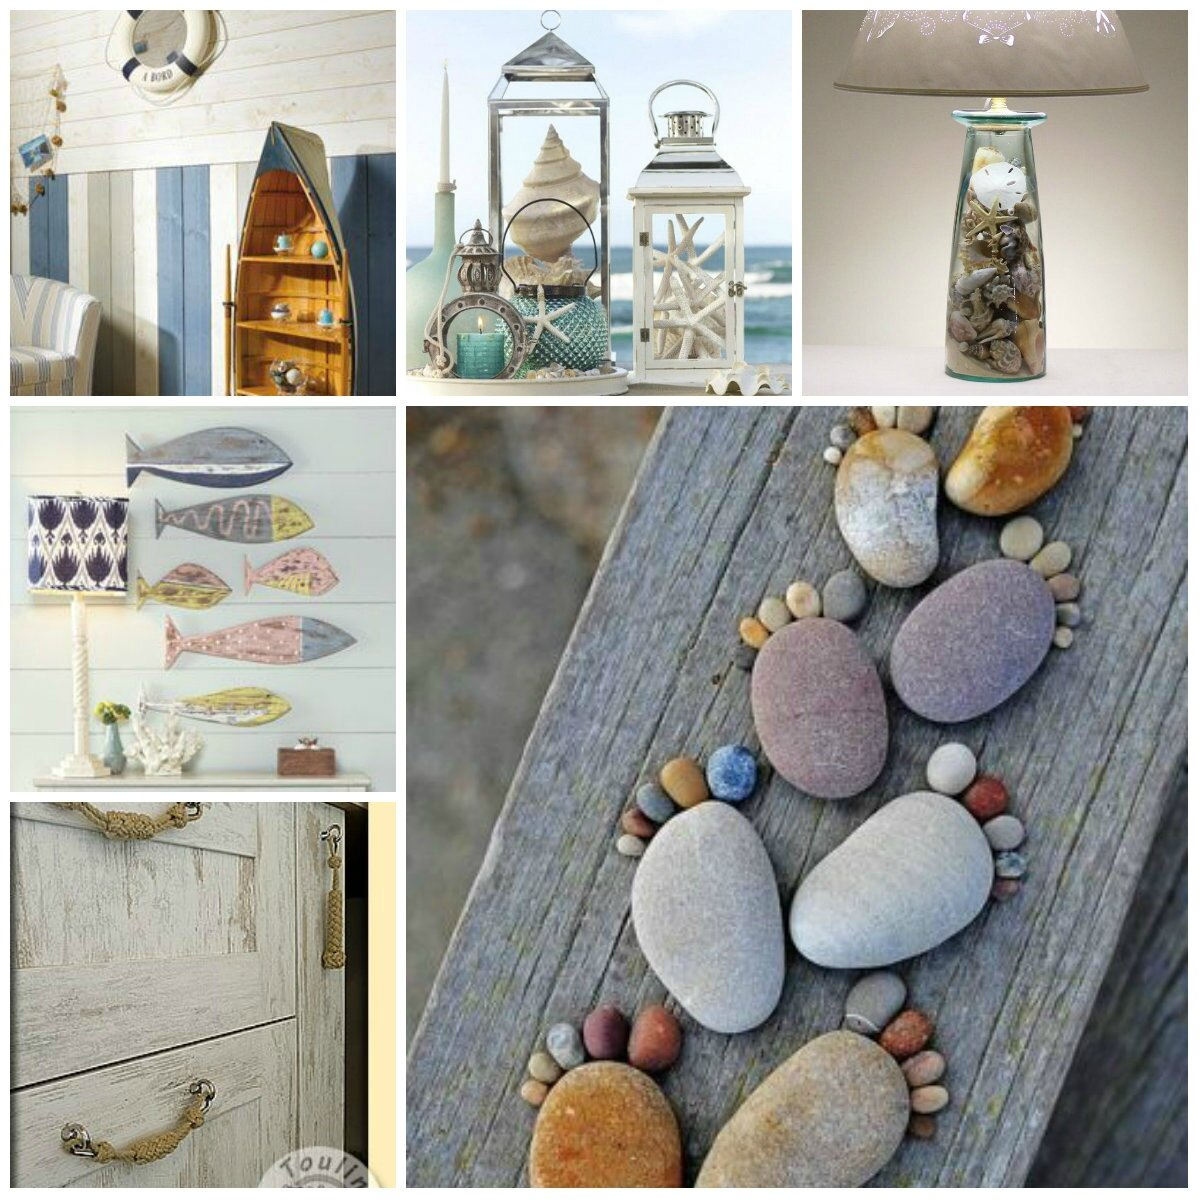 D coration maison theme mer for Decoration maison vacances mer